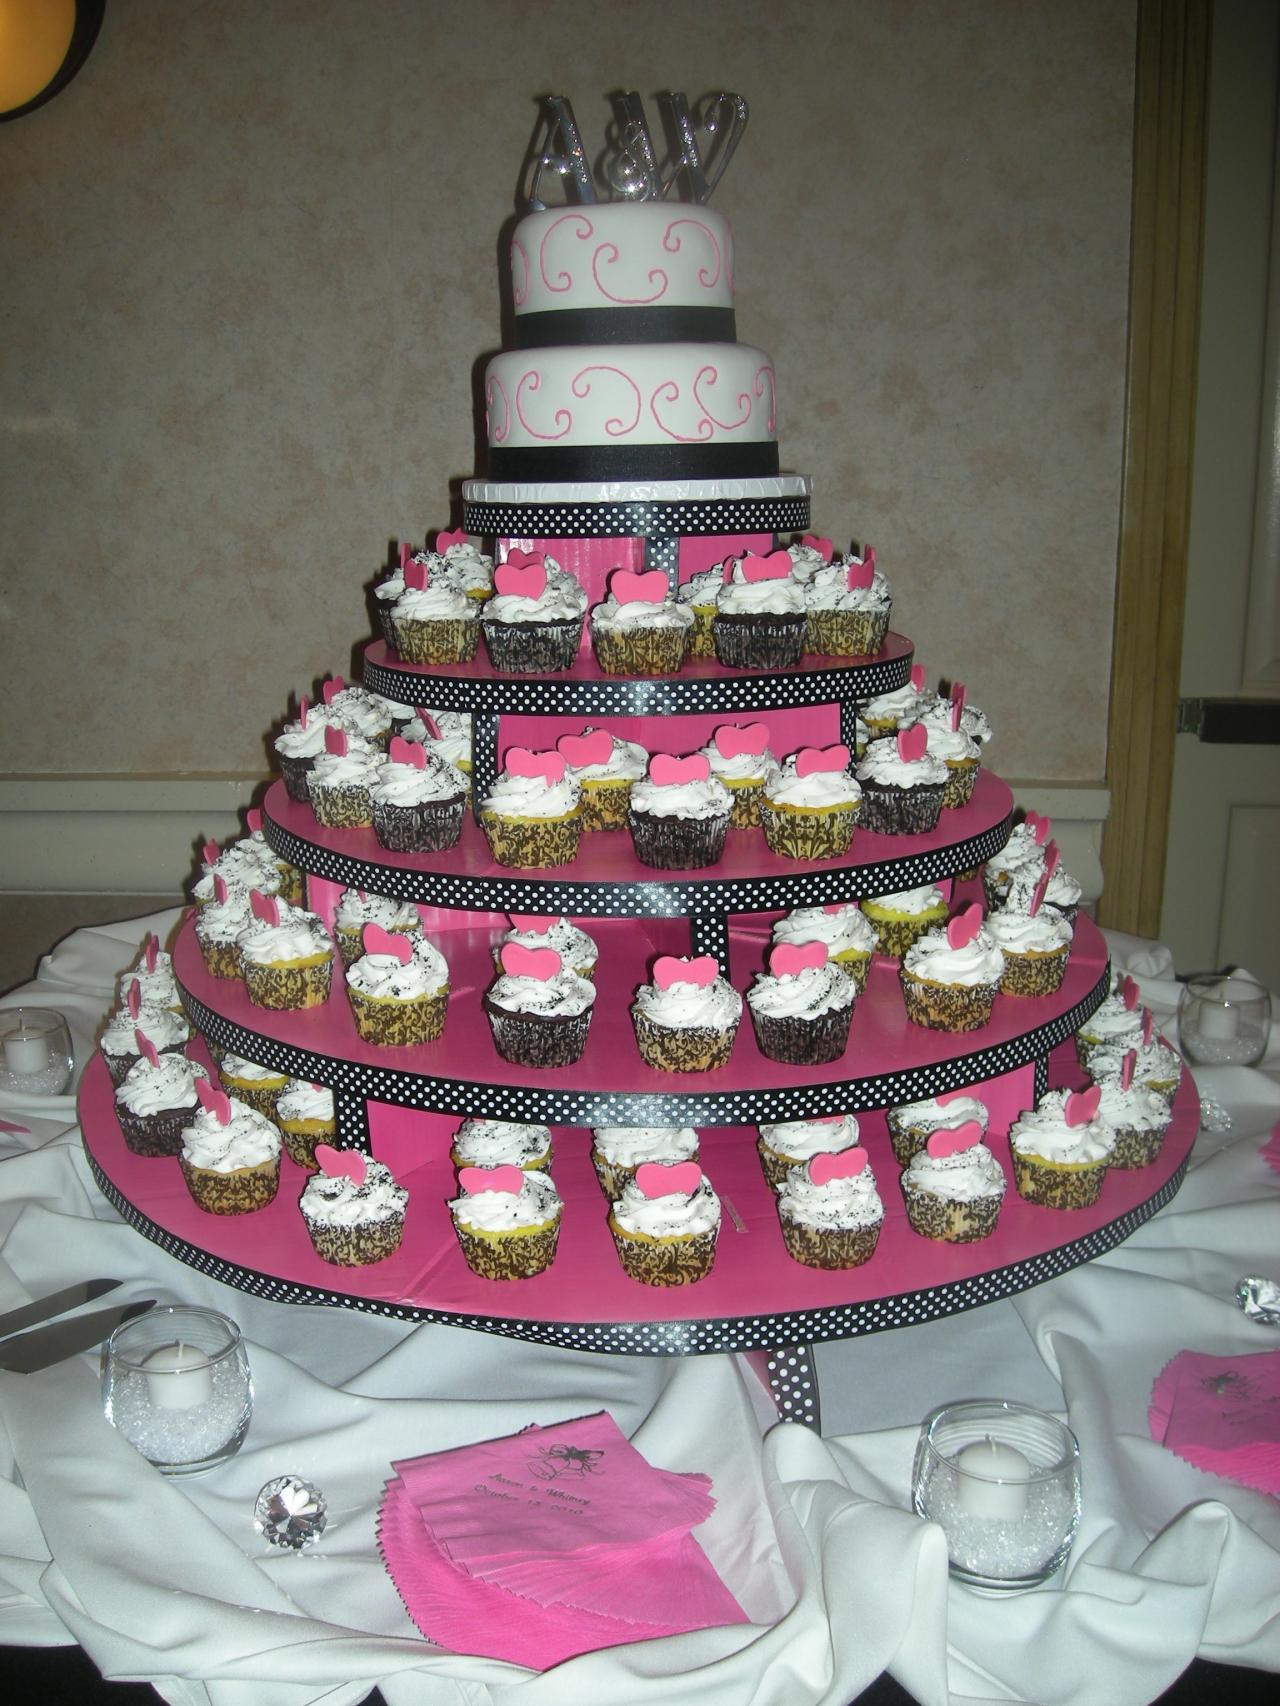 Wedding Cakes Picture Gallery  My Goodness Cakes Wedding Cake Gallery 1